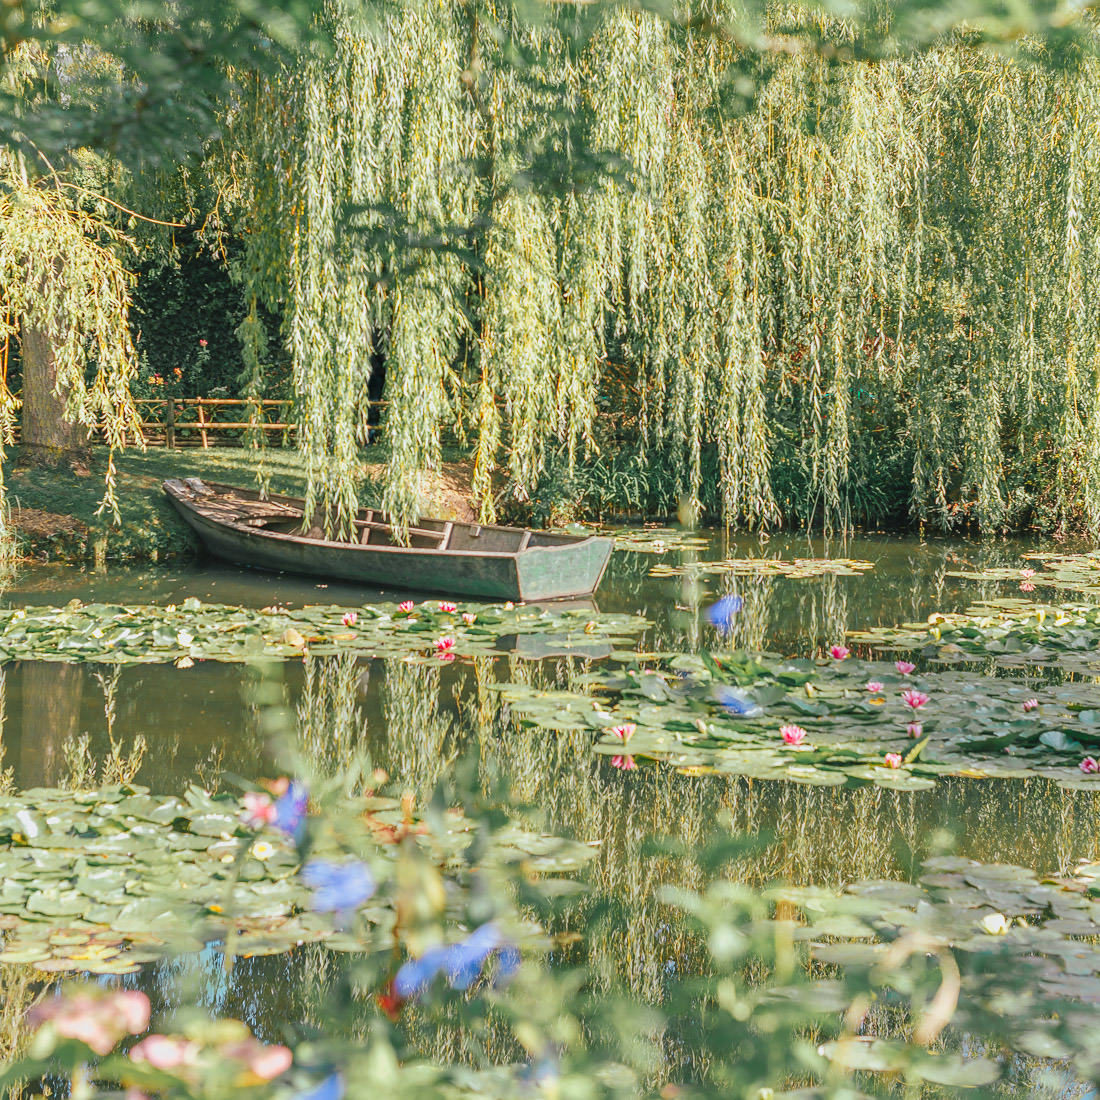 Wood Board and Water Lilies at Monet's Garden